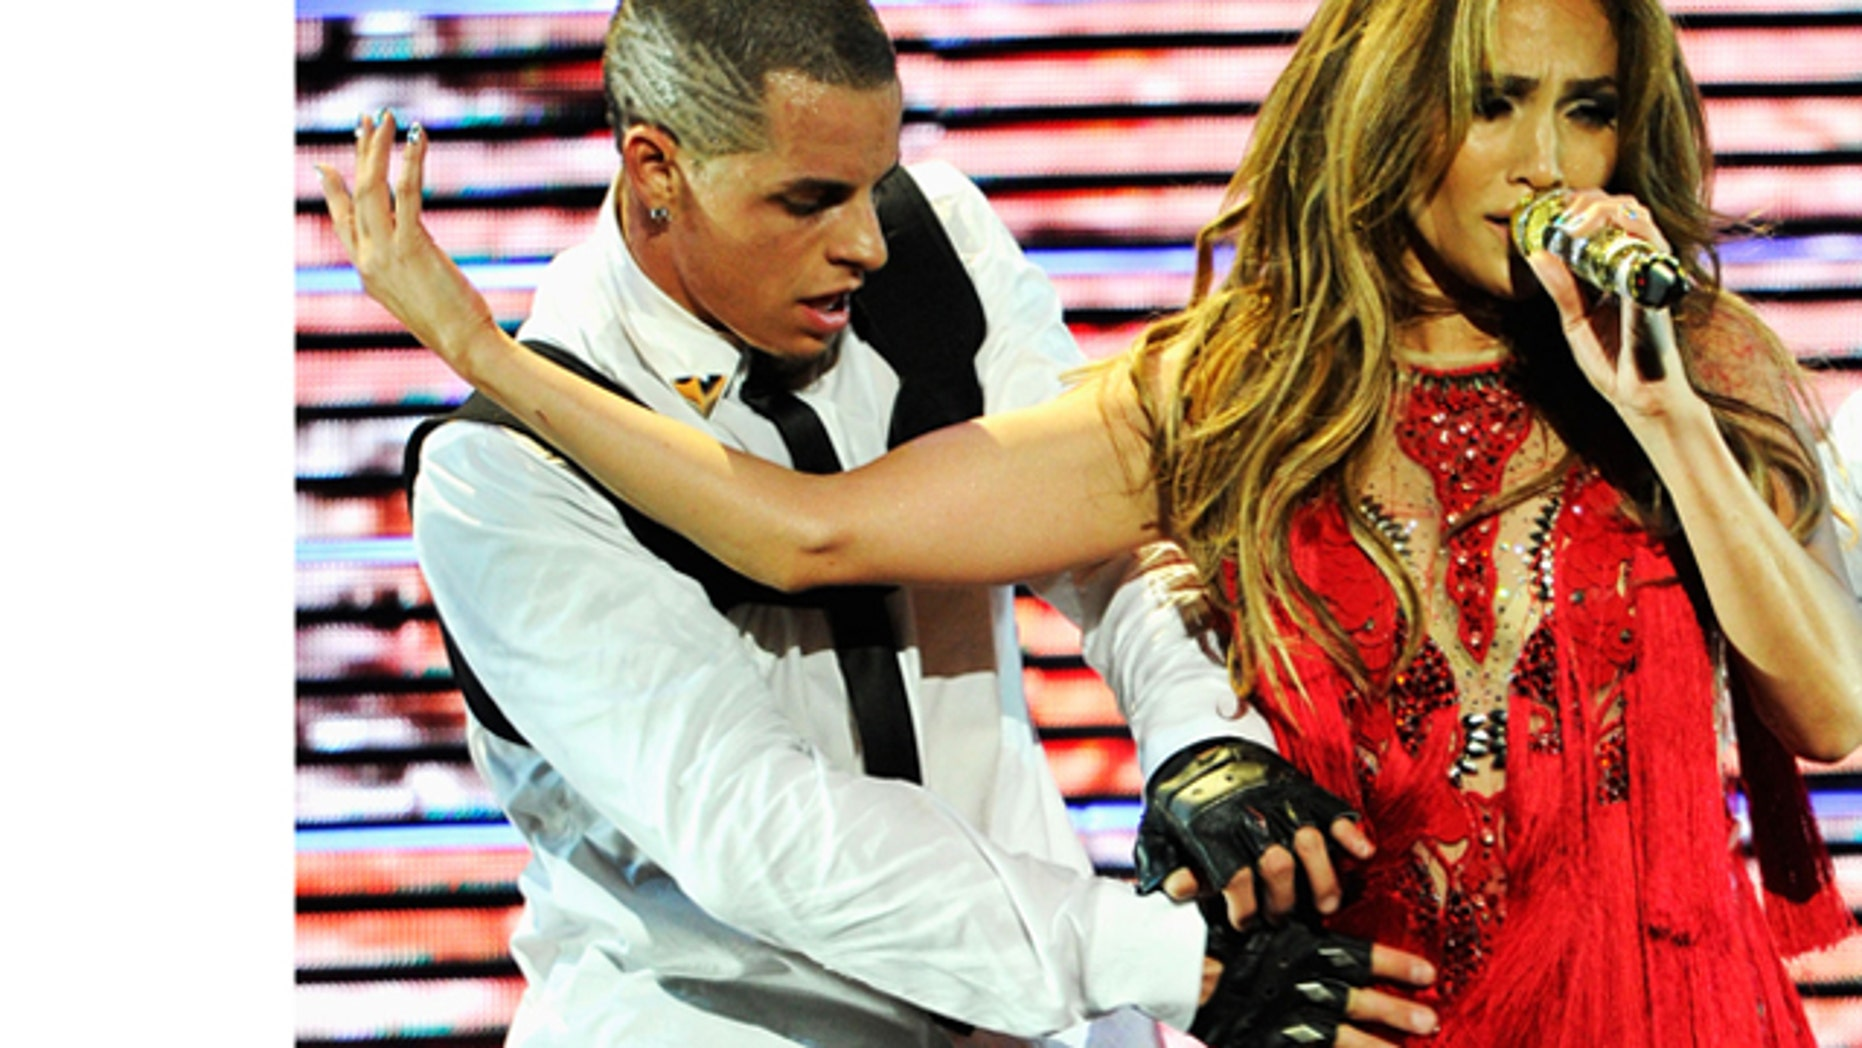 Sept. 24, 2011: Singer Jennifer Lopez and dancer Casper Smart perform onstage at the iHeartRadio Music Festival held at the MGM Grand Garden Arena in Las Vegas, Nev.